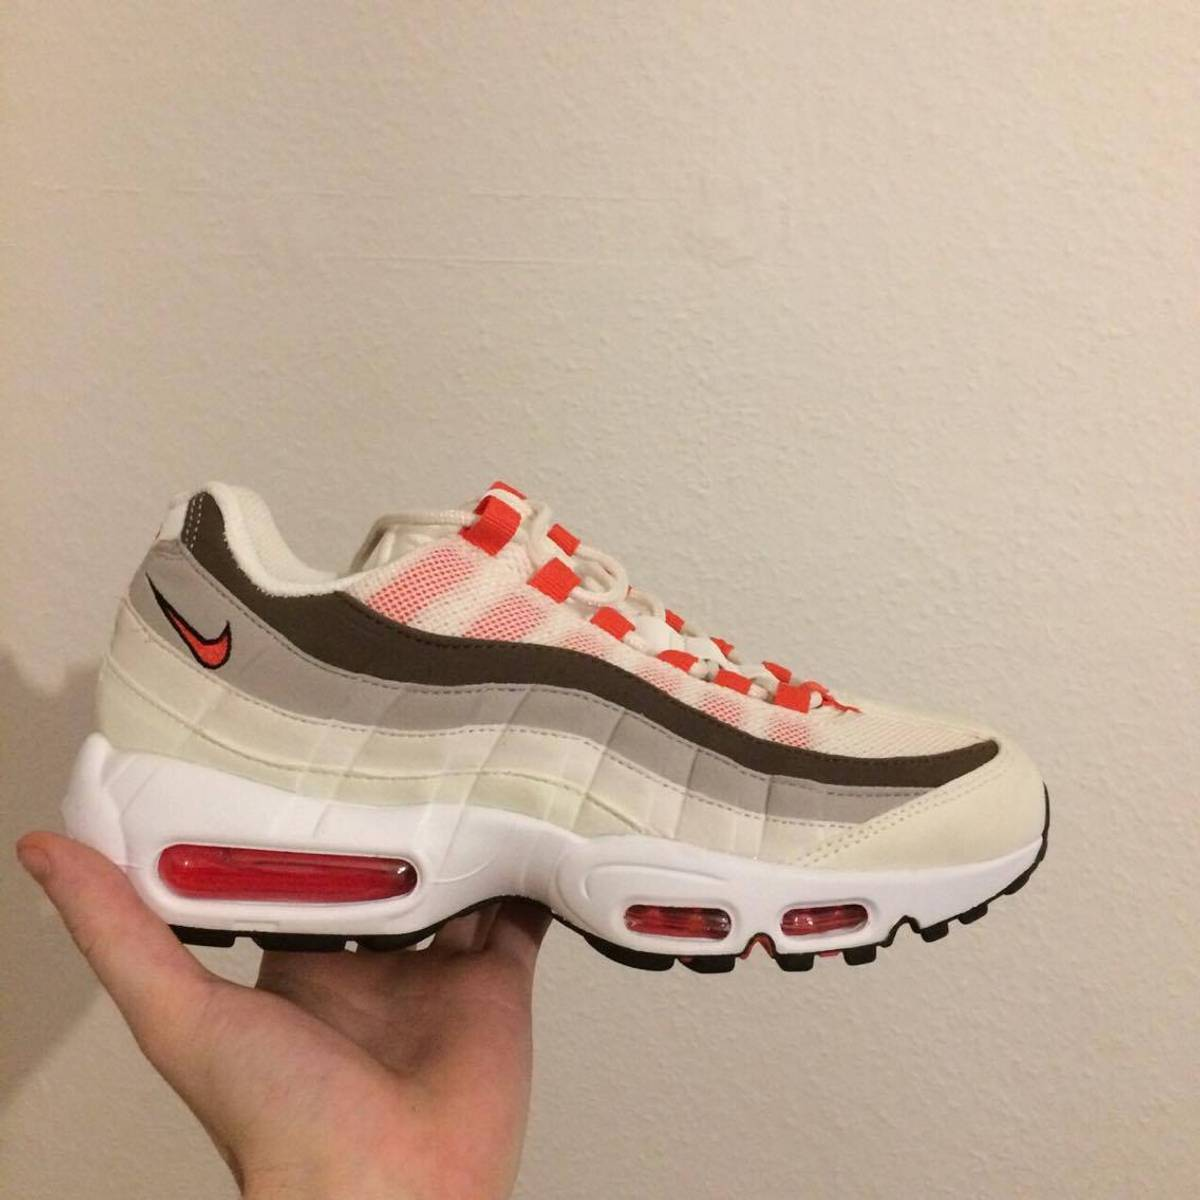 Nike air max 95 sail ember glow-phantom ... a0913c917